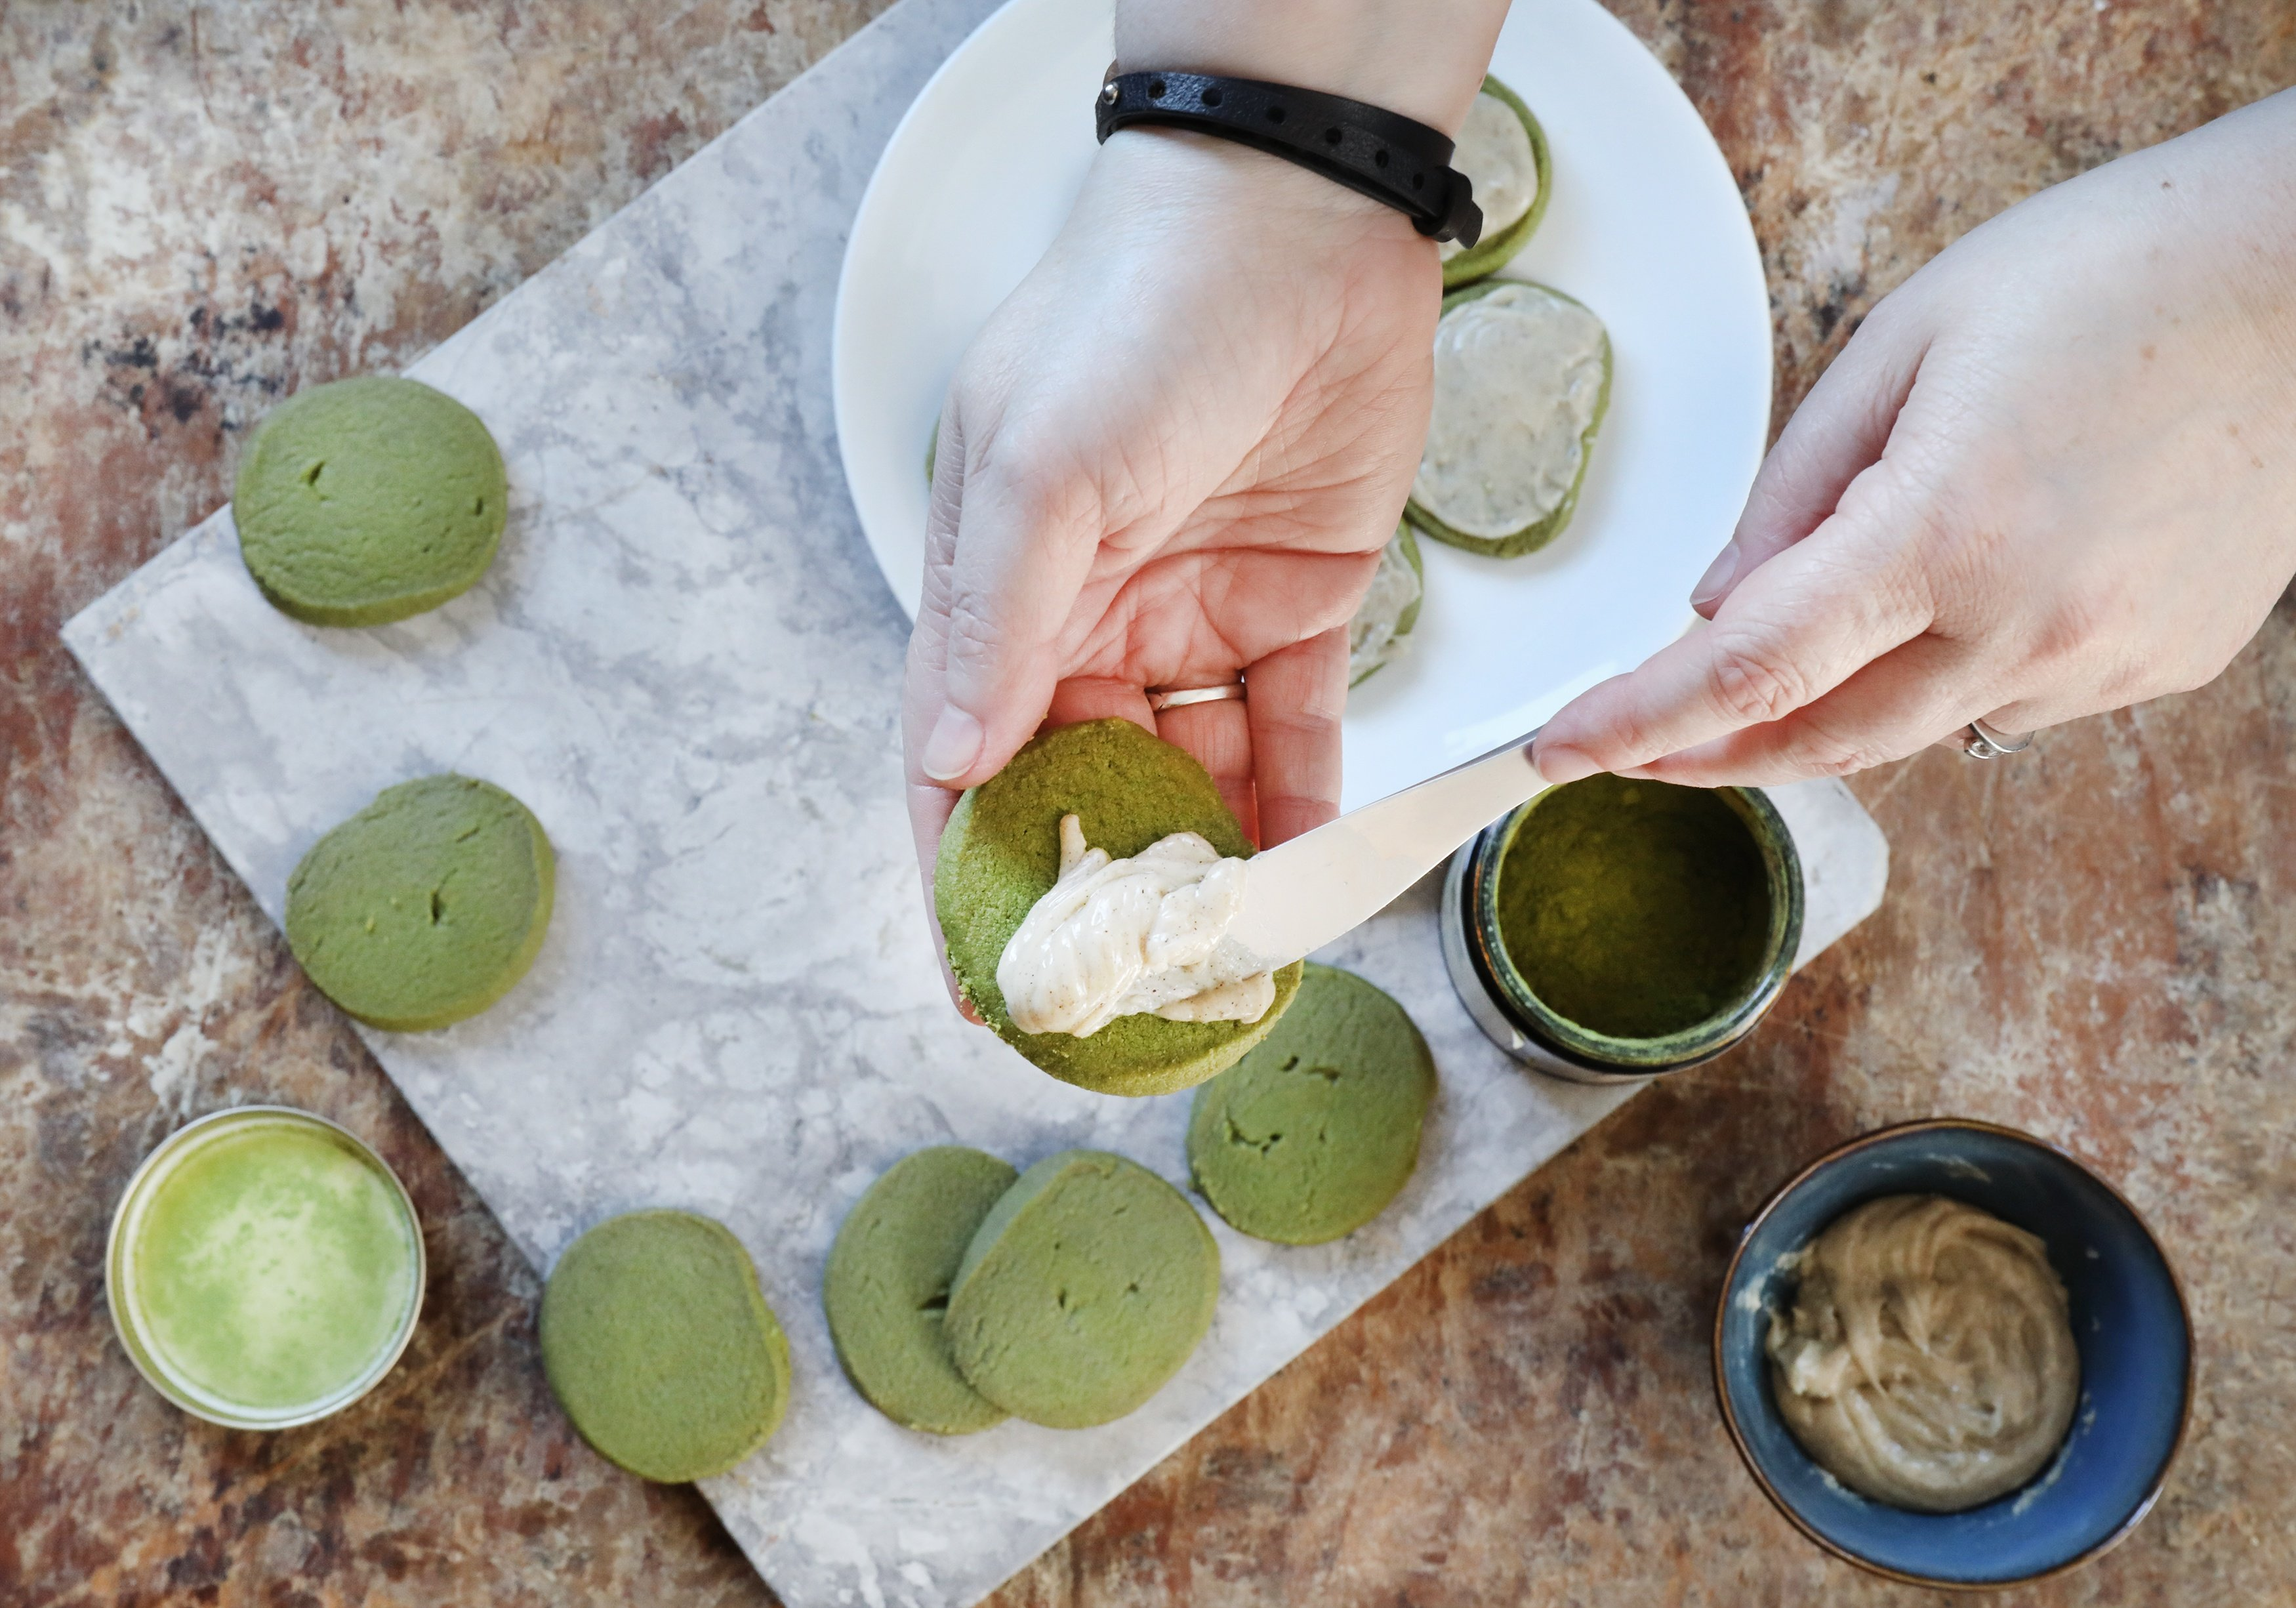 Hand with butter knife spreading vanilla bean glaze on shortbread matcha cookies